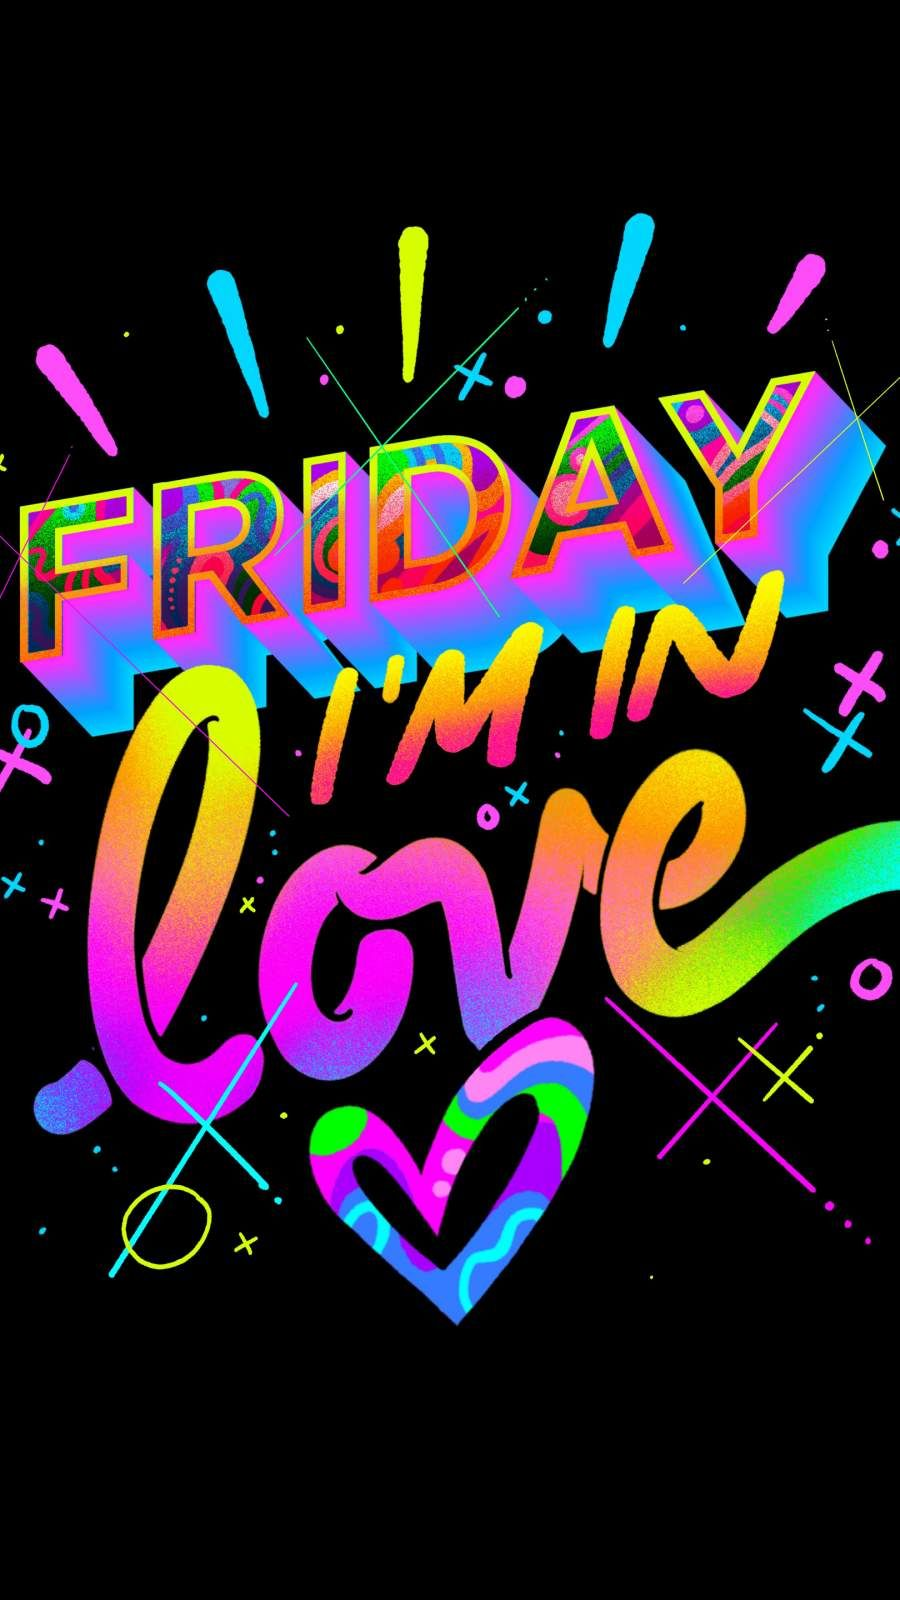 Friday I m In Love iPhone Wallpaper from iphoneswallpapers.com